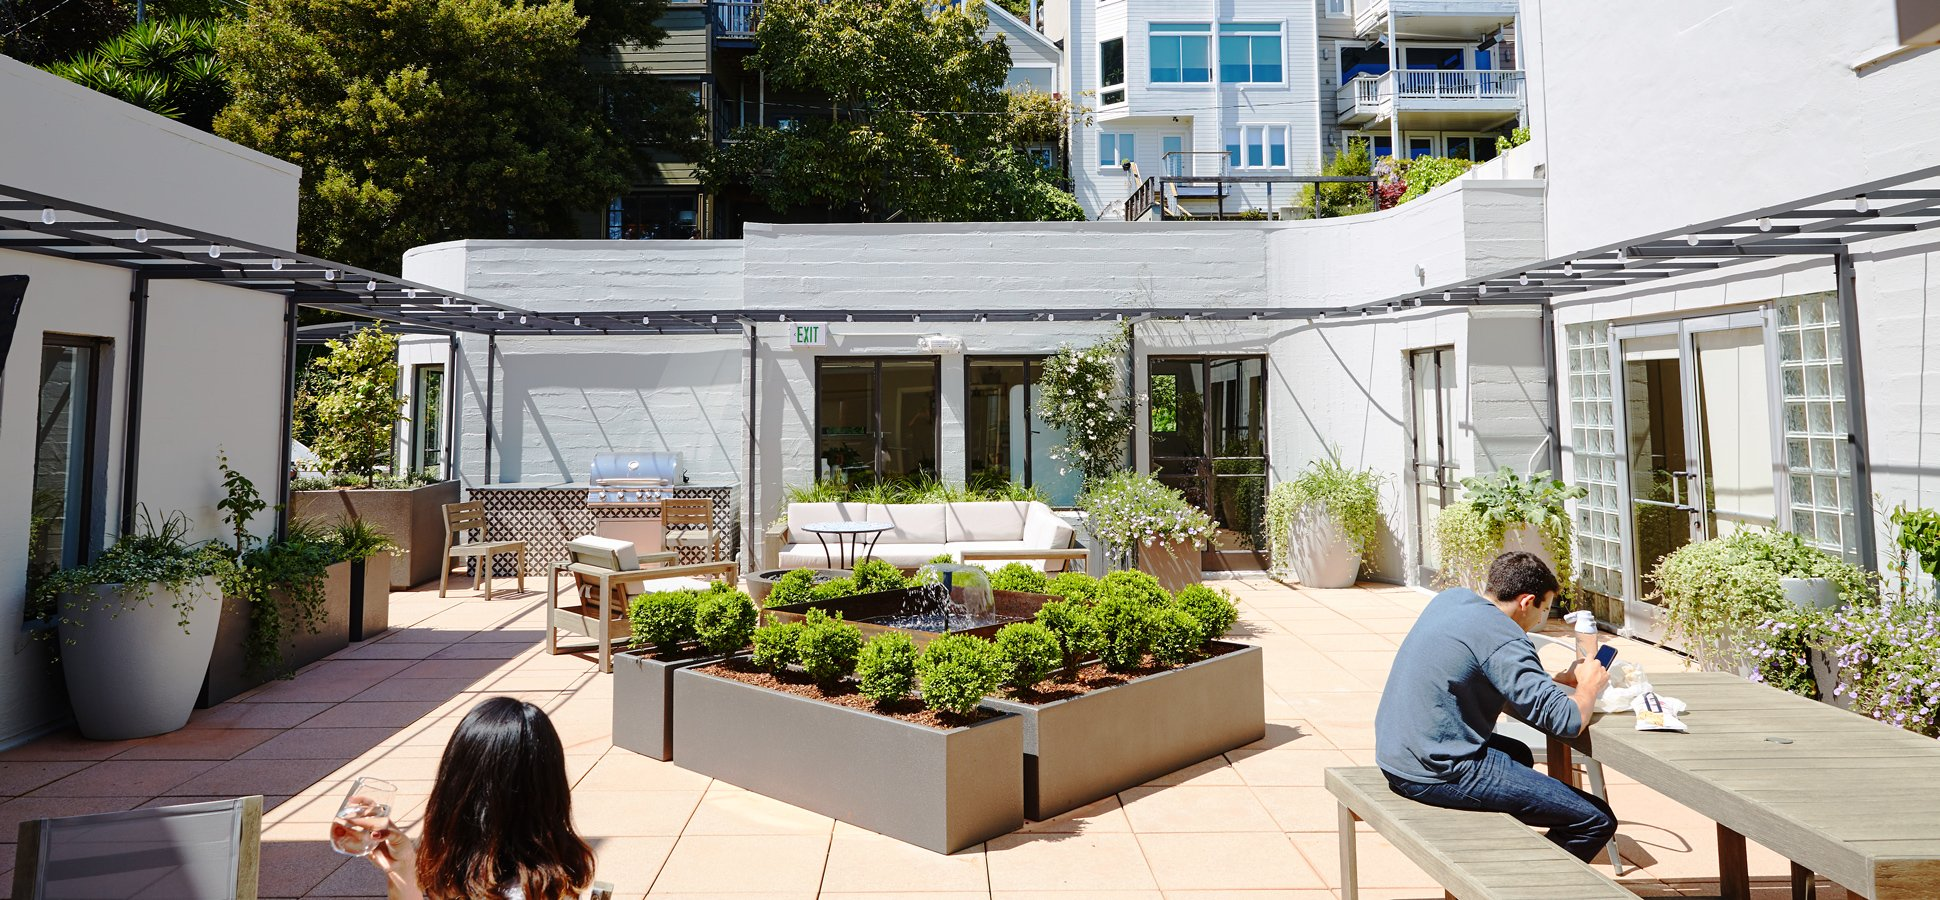 Bike Shops, Climbing Walls, and Lemon Groves: Inside the Offices of America's Hottest Startups